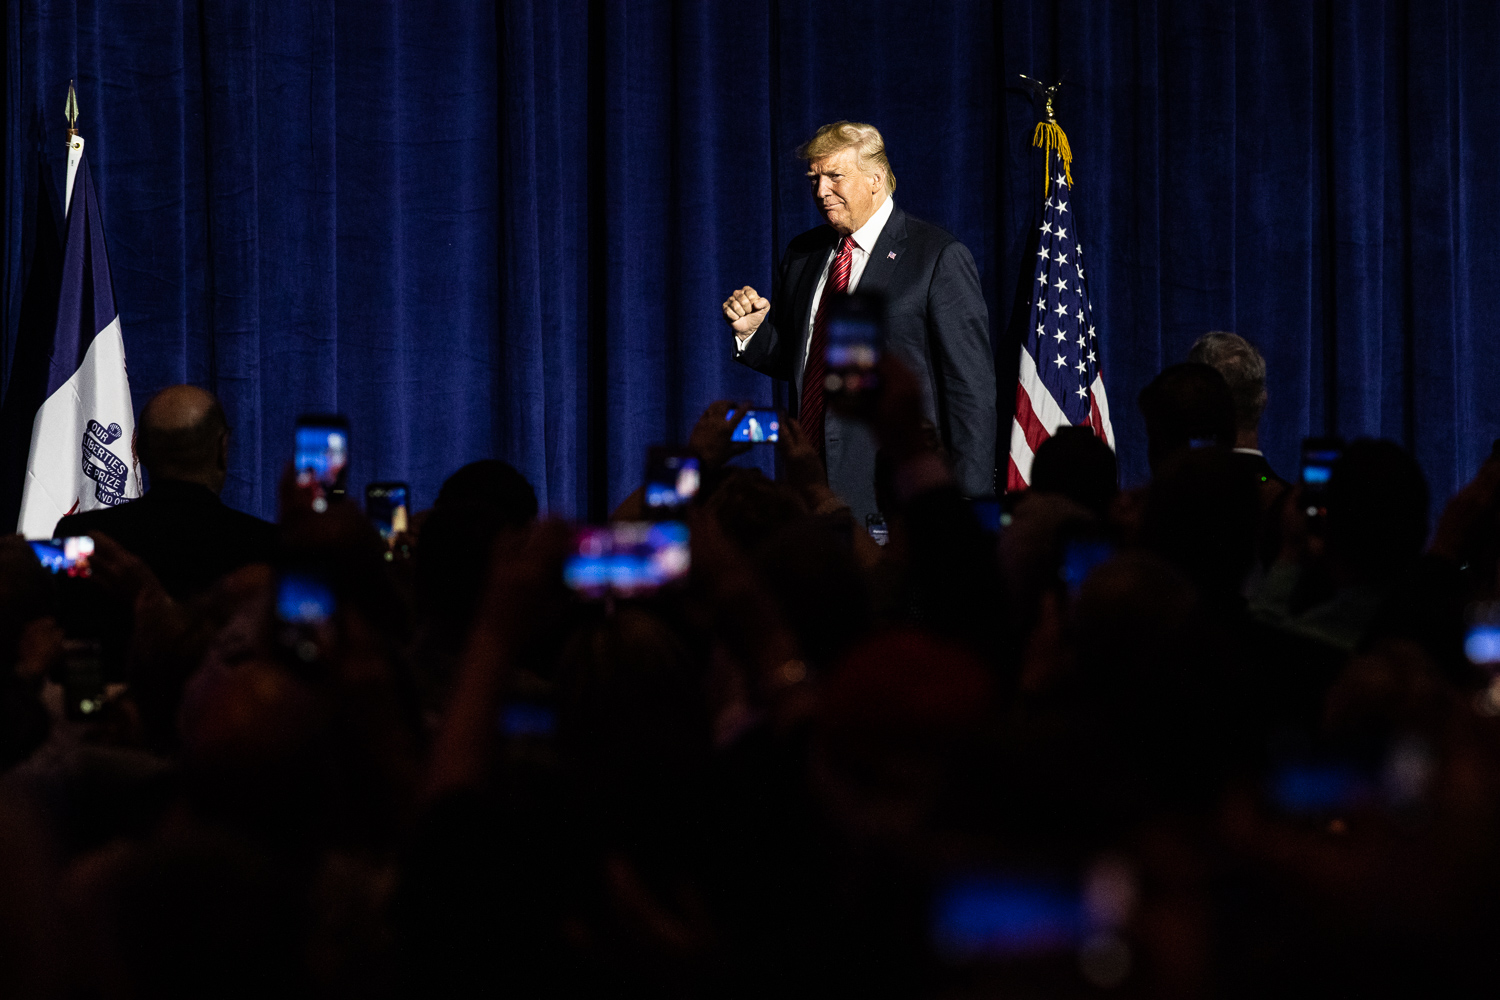 President Donald Trump walks to the podium during the Iowa GOP's America First Dinner at the Ron Pearson Center in West Des Moines on Tuesday, June 11, 2019. (Wyatt Dlouhy/The Daily Iowan)